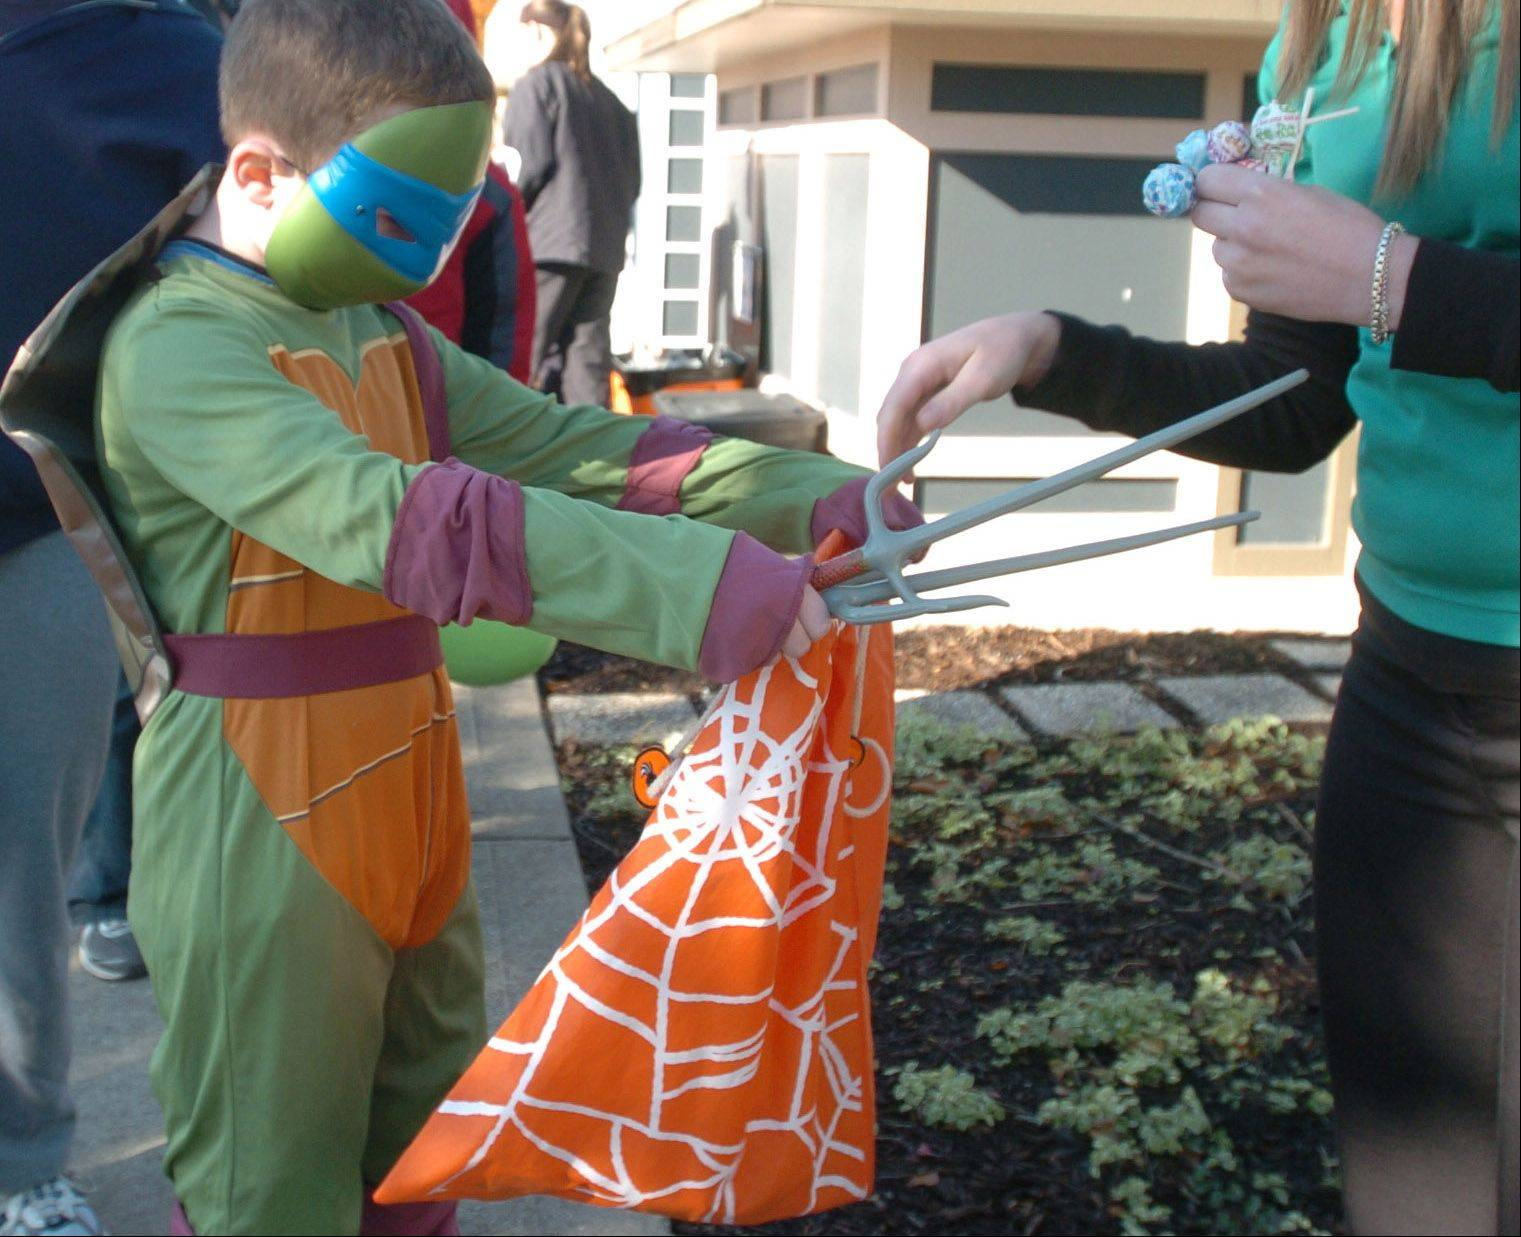 Dressed as a turtle, Aiden Spenner, 8, of Naperville gets candy from a volunteer during the annual Trick or Treat at Safety Town in Naperville Saturday.